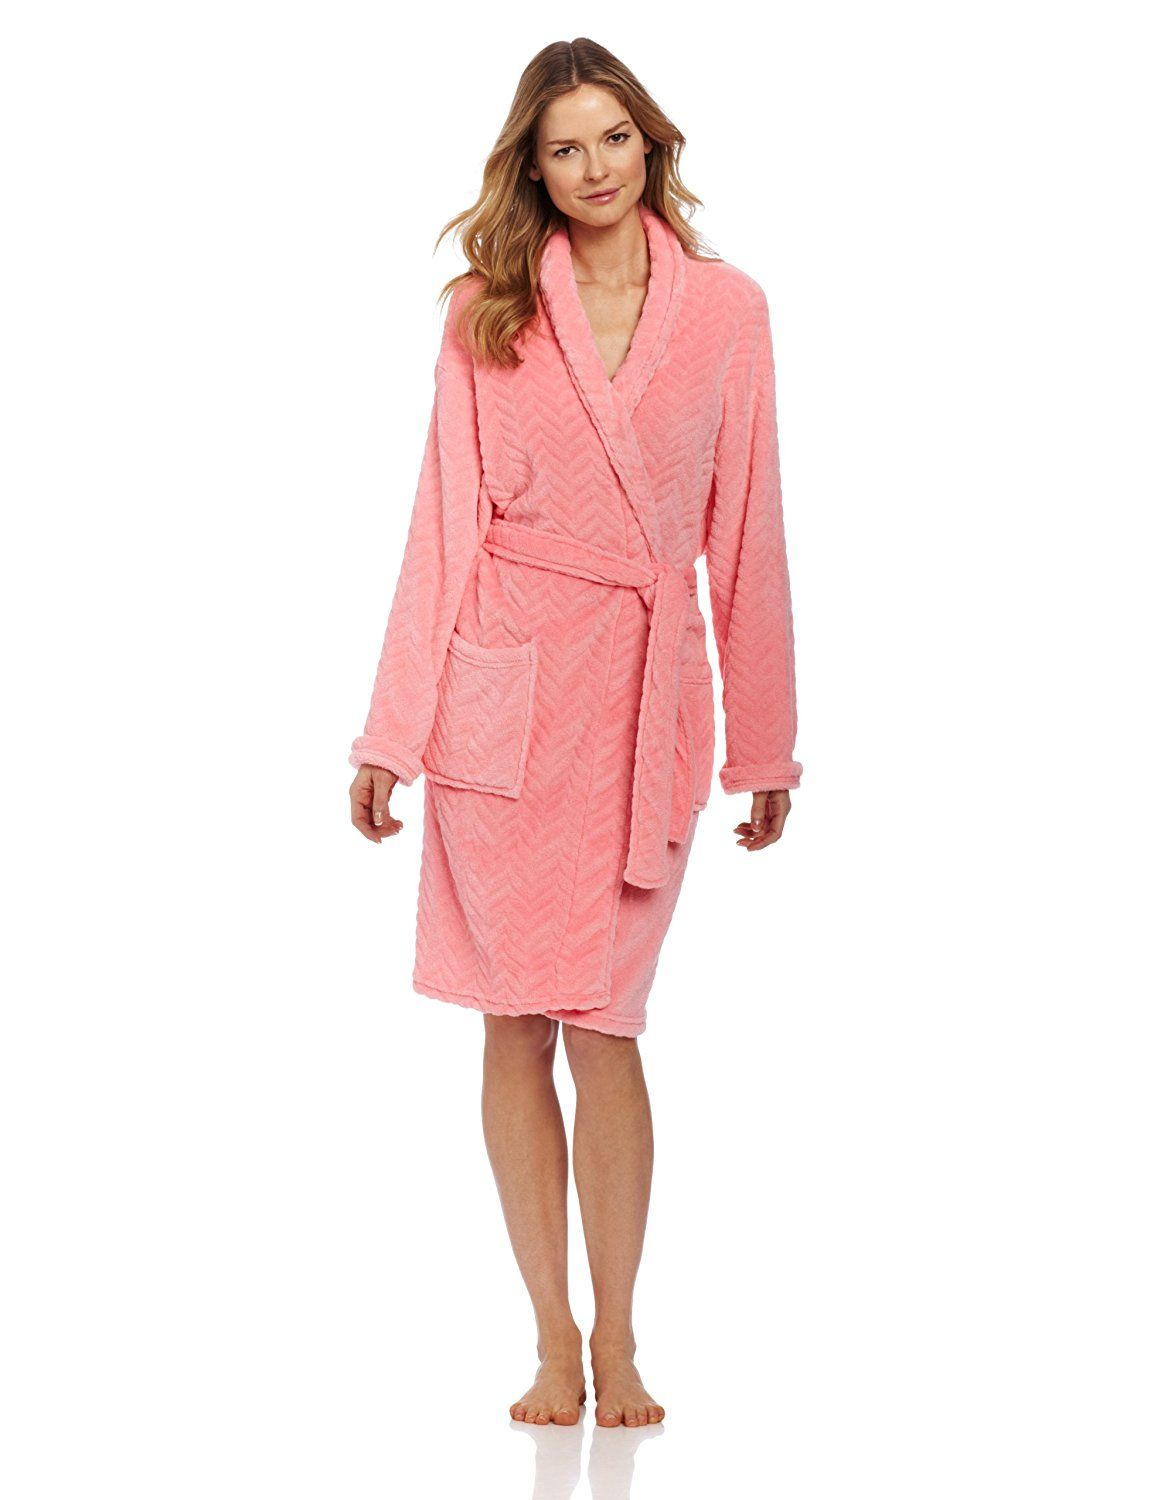 8e596b10ac bathrobes for women silk bathrobes for women cotton bathrobes for women  plush bathrobes for women clothing